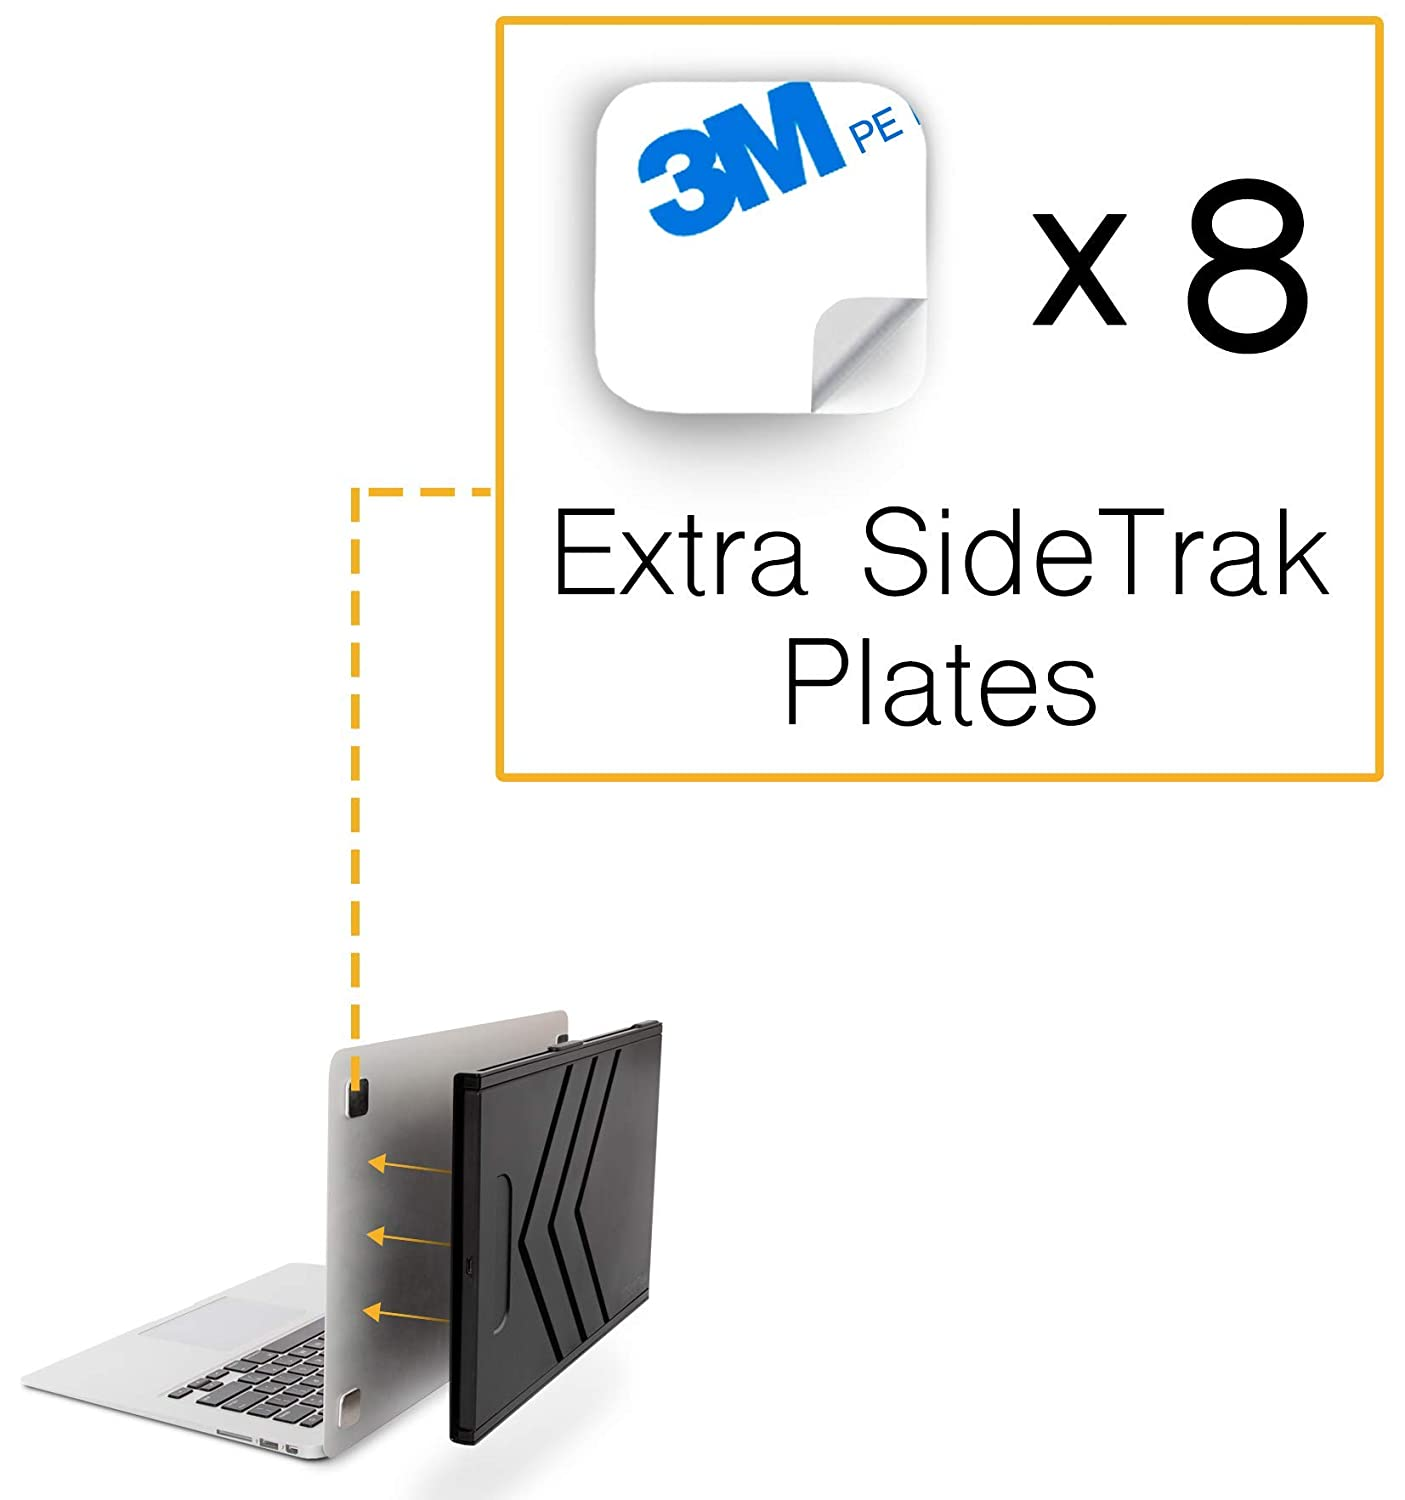 SideTrak Metal Plates for Laptop - Add On/Replacement Plates Only - Compatible with SideTrak Portable Monitor - 2 Sets of Metal Plates (8 Plates Total)